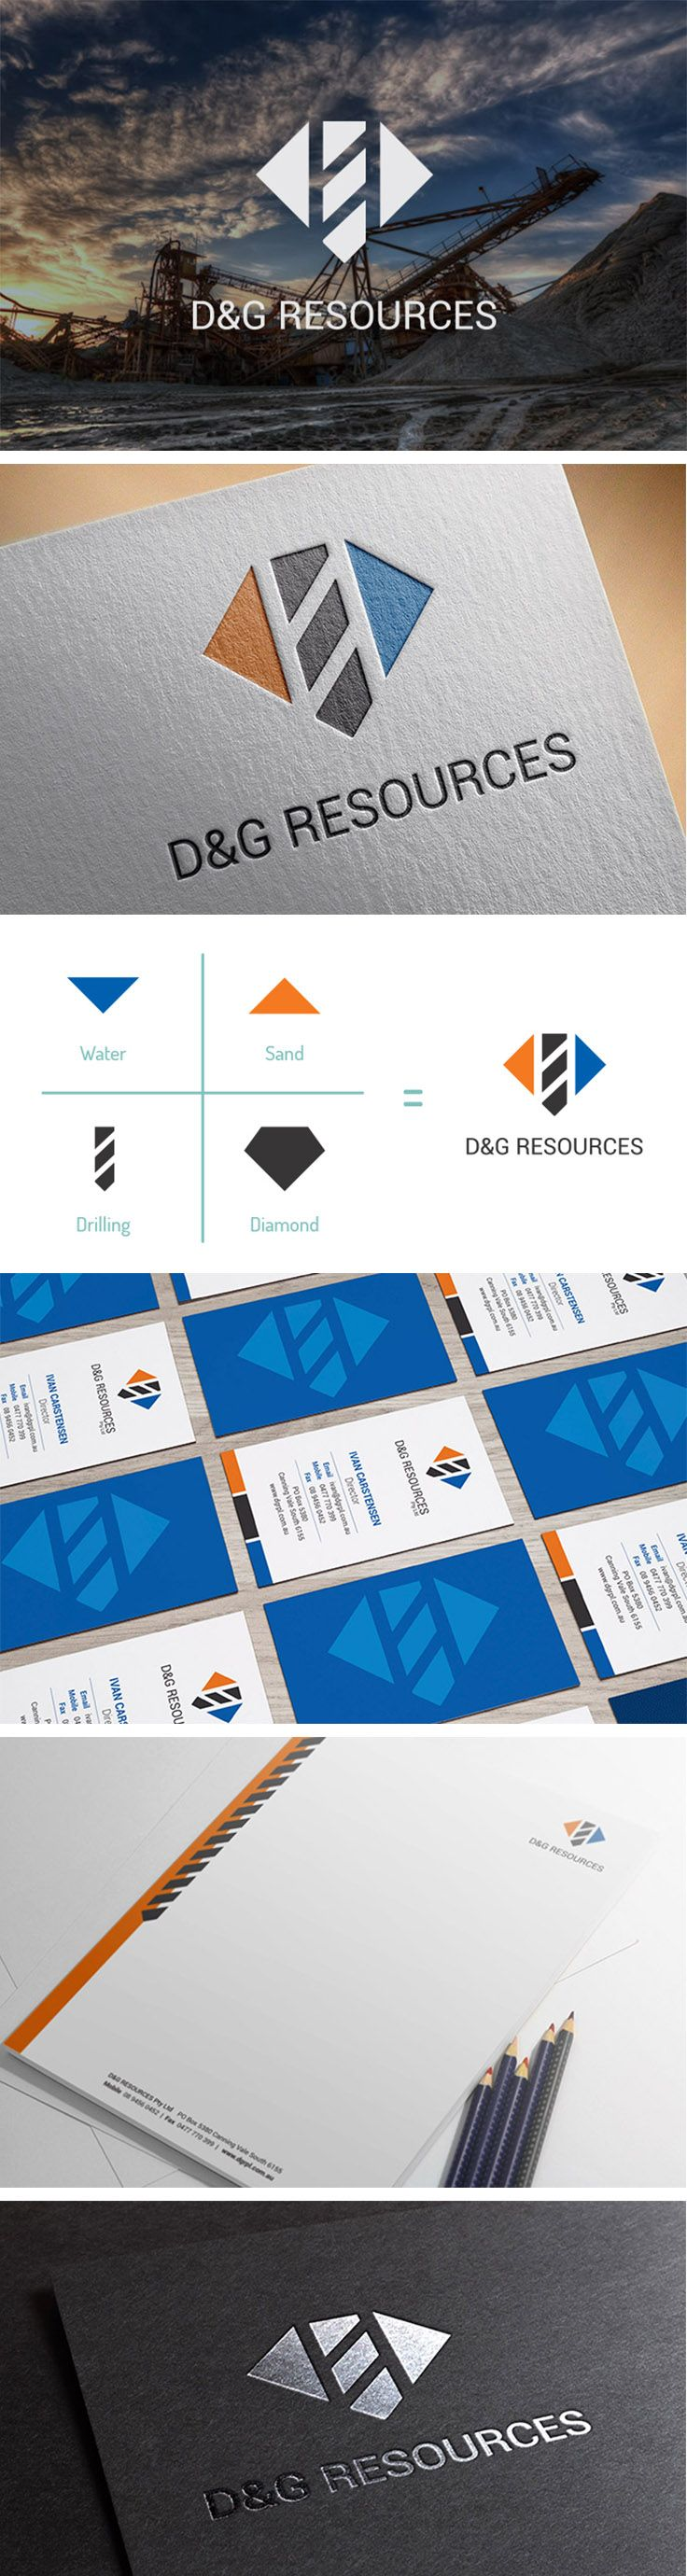 Logo Design, Brand Identity, Drilling & Grouting Ressources | mining…